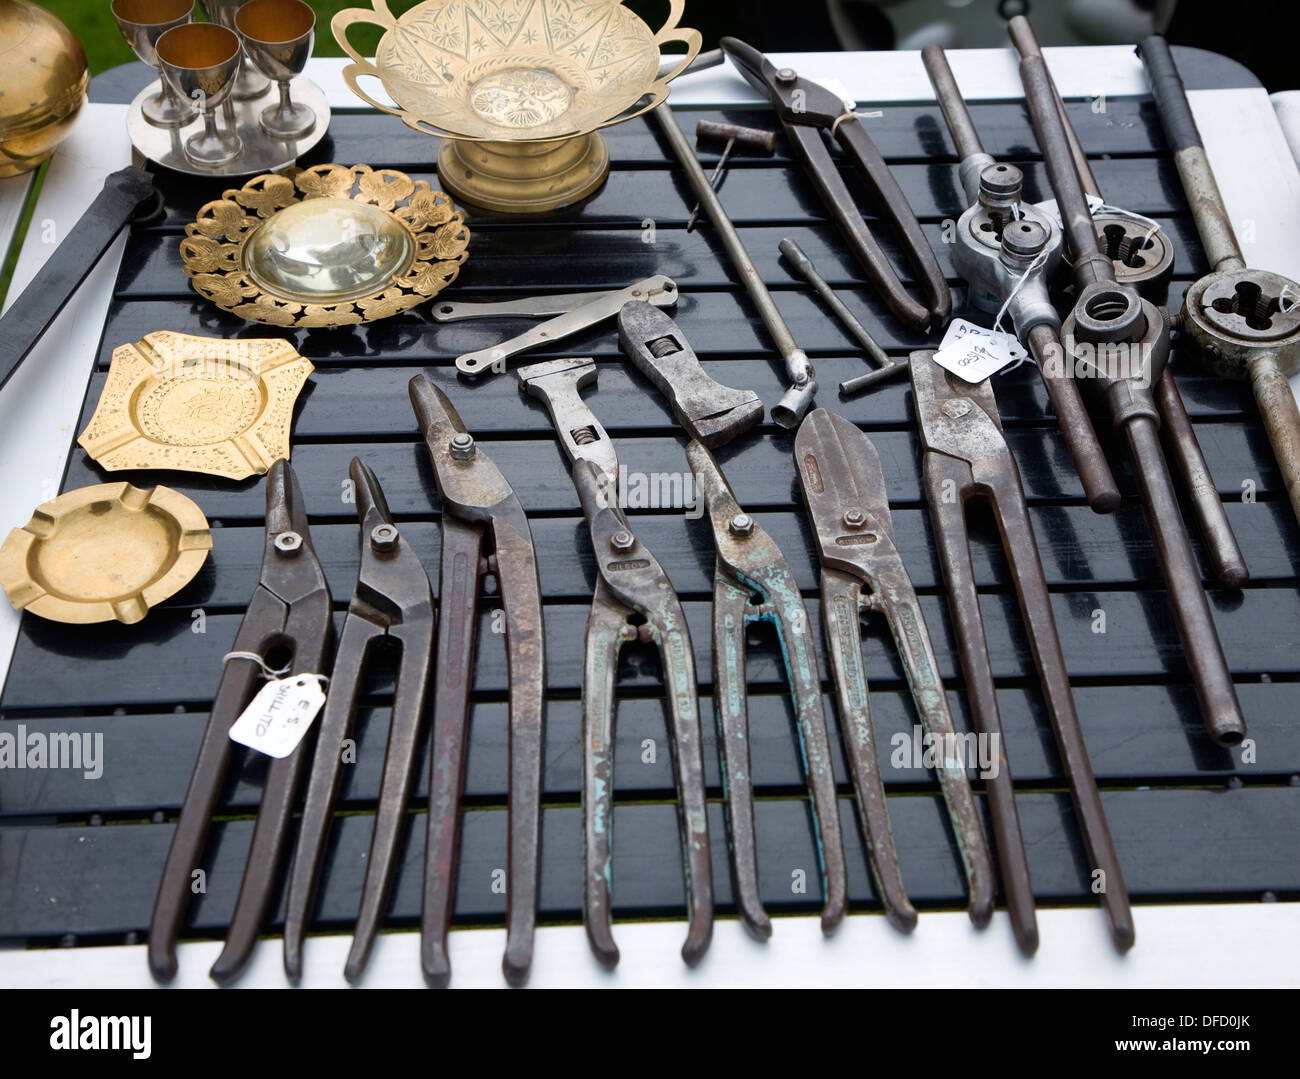 Metal craft tools on display at a car boot sale in UK - Stock Image